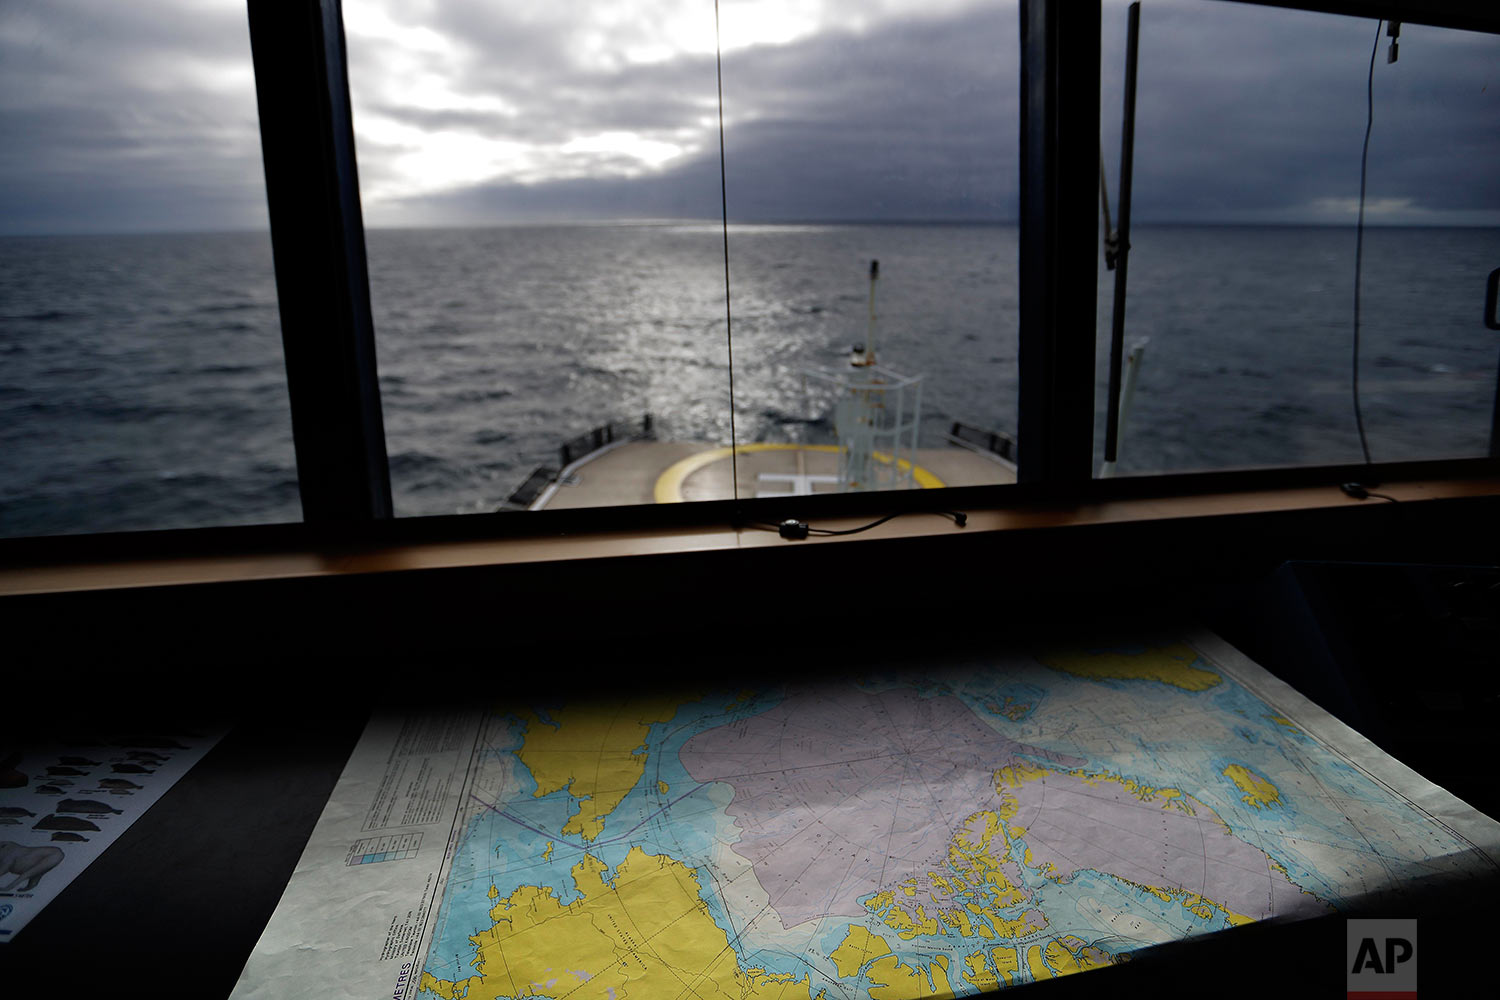 A map of the Arctic Ocean overlooks the bow of the Finnish icebreaker MSV Nordica as it sails in the North Pacific Ocean toward the Bering Sea on Sunday, July 9, 2017. While icebreakers are equipped with sensitive radar systems, ultimately it's up to the ability and experience of the person at the helm to ensure the ship only breaks ice when it's unavoidable. (AP Photo/David Goldman)